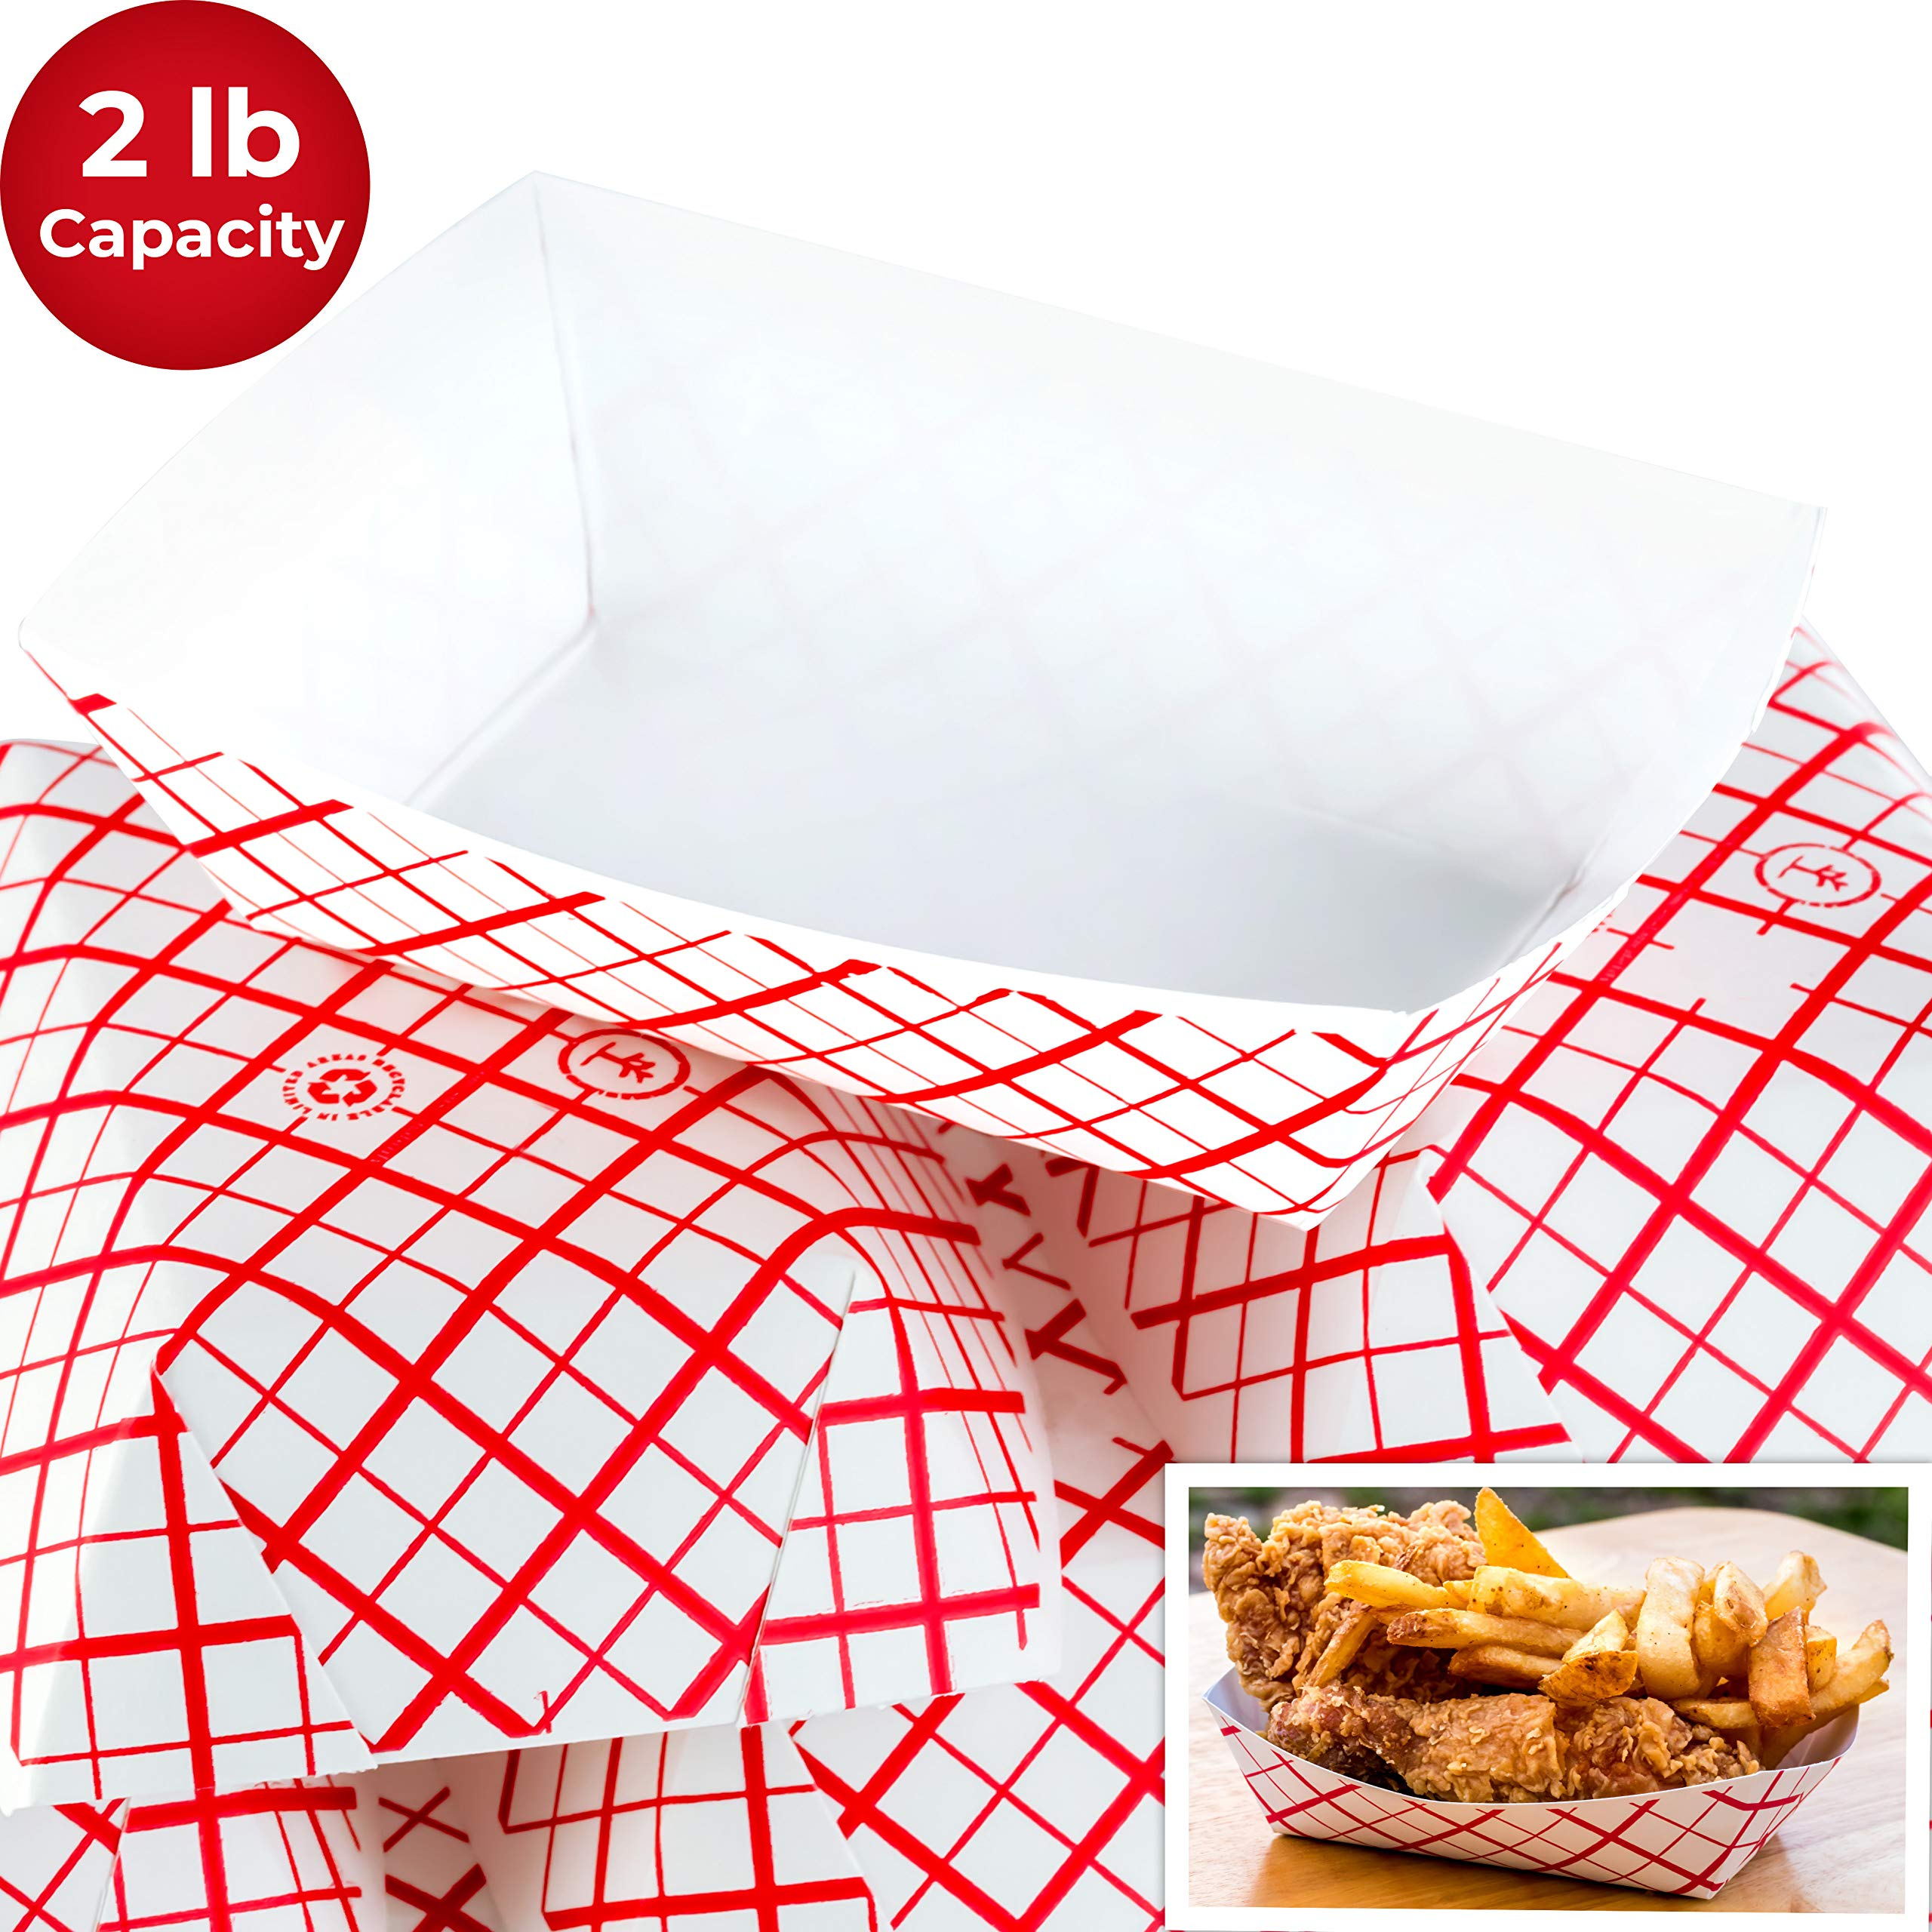 Heavy Duty, Grease Resistant 2 Lb Paper Food Trays 100 Pack. Recyclable, Coated Paperboard Basket Ideal for Festival, Carnival and Concession Stand Treats Like Fries, Ice Cream and Chicken Tenders by Avant Grub